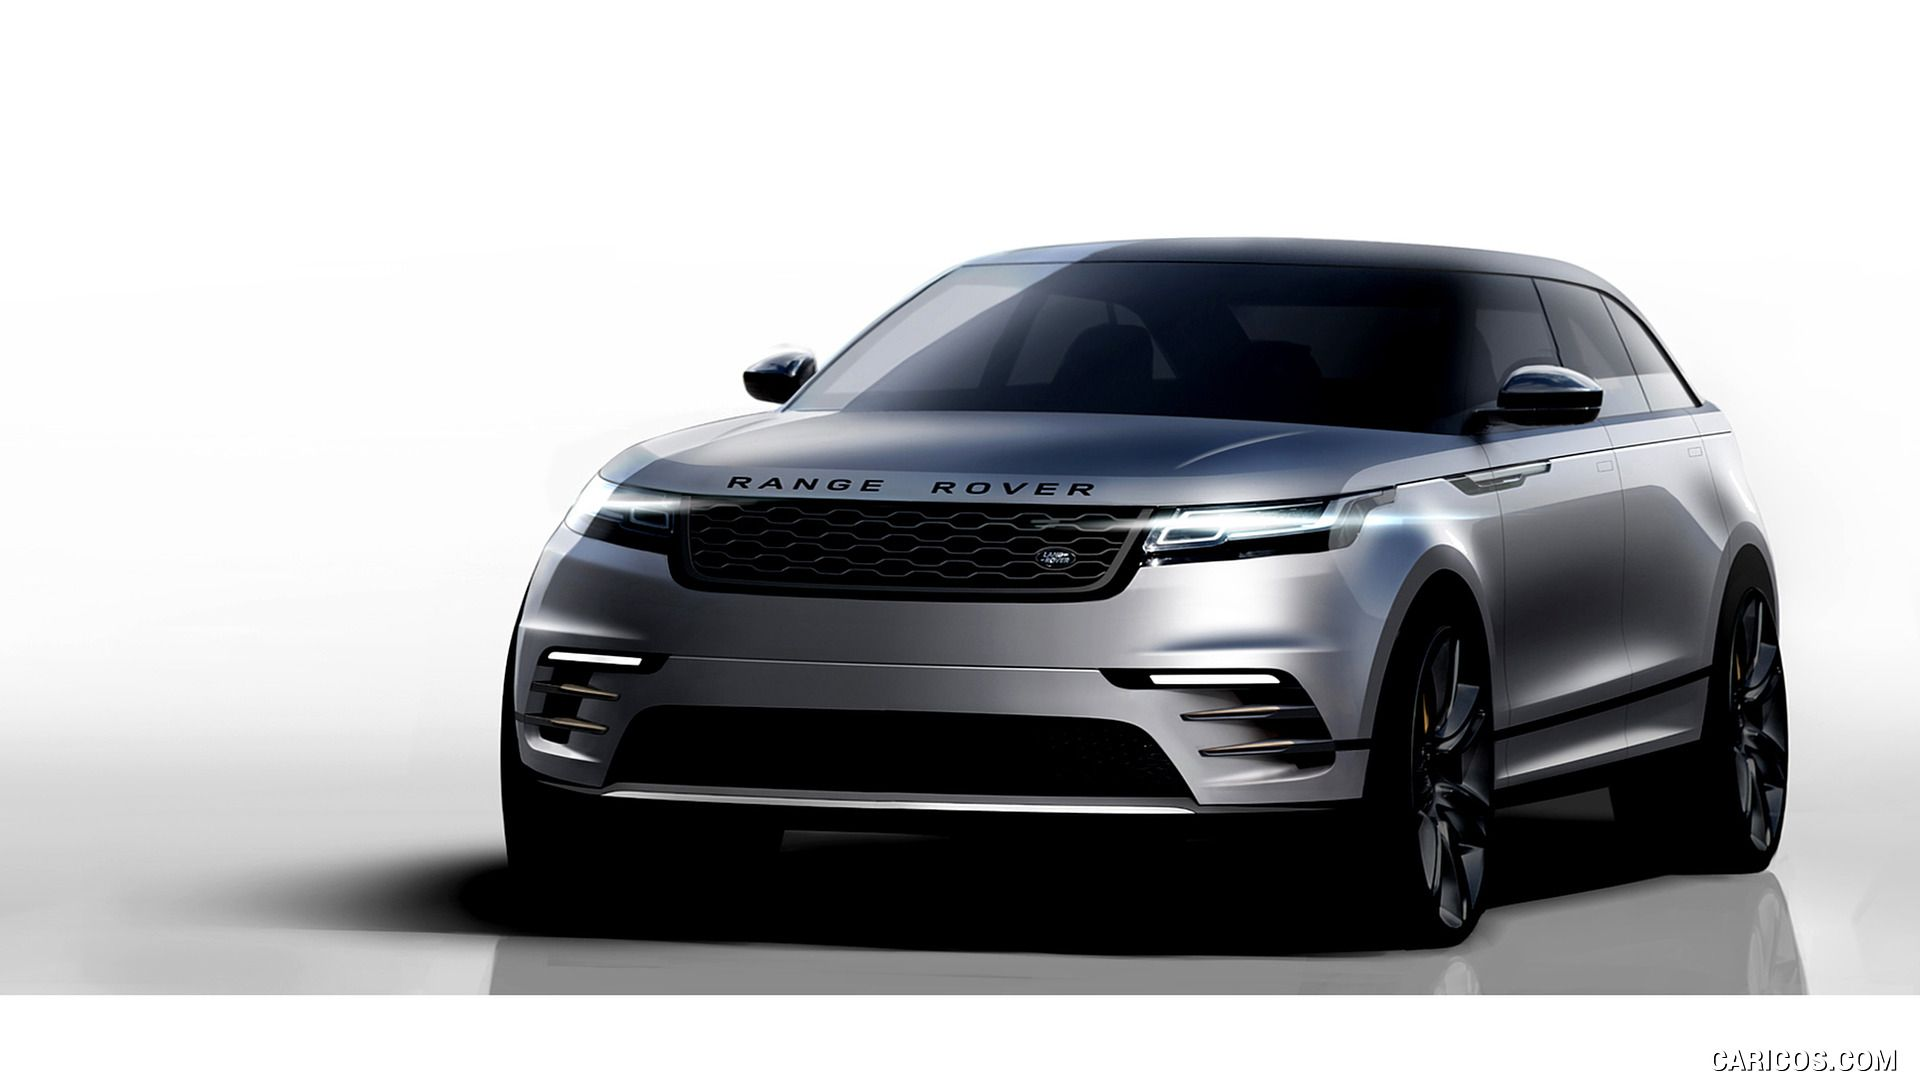 2018 Range Rover Velar Wallpaper LADY CARS Pinterest